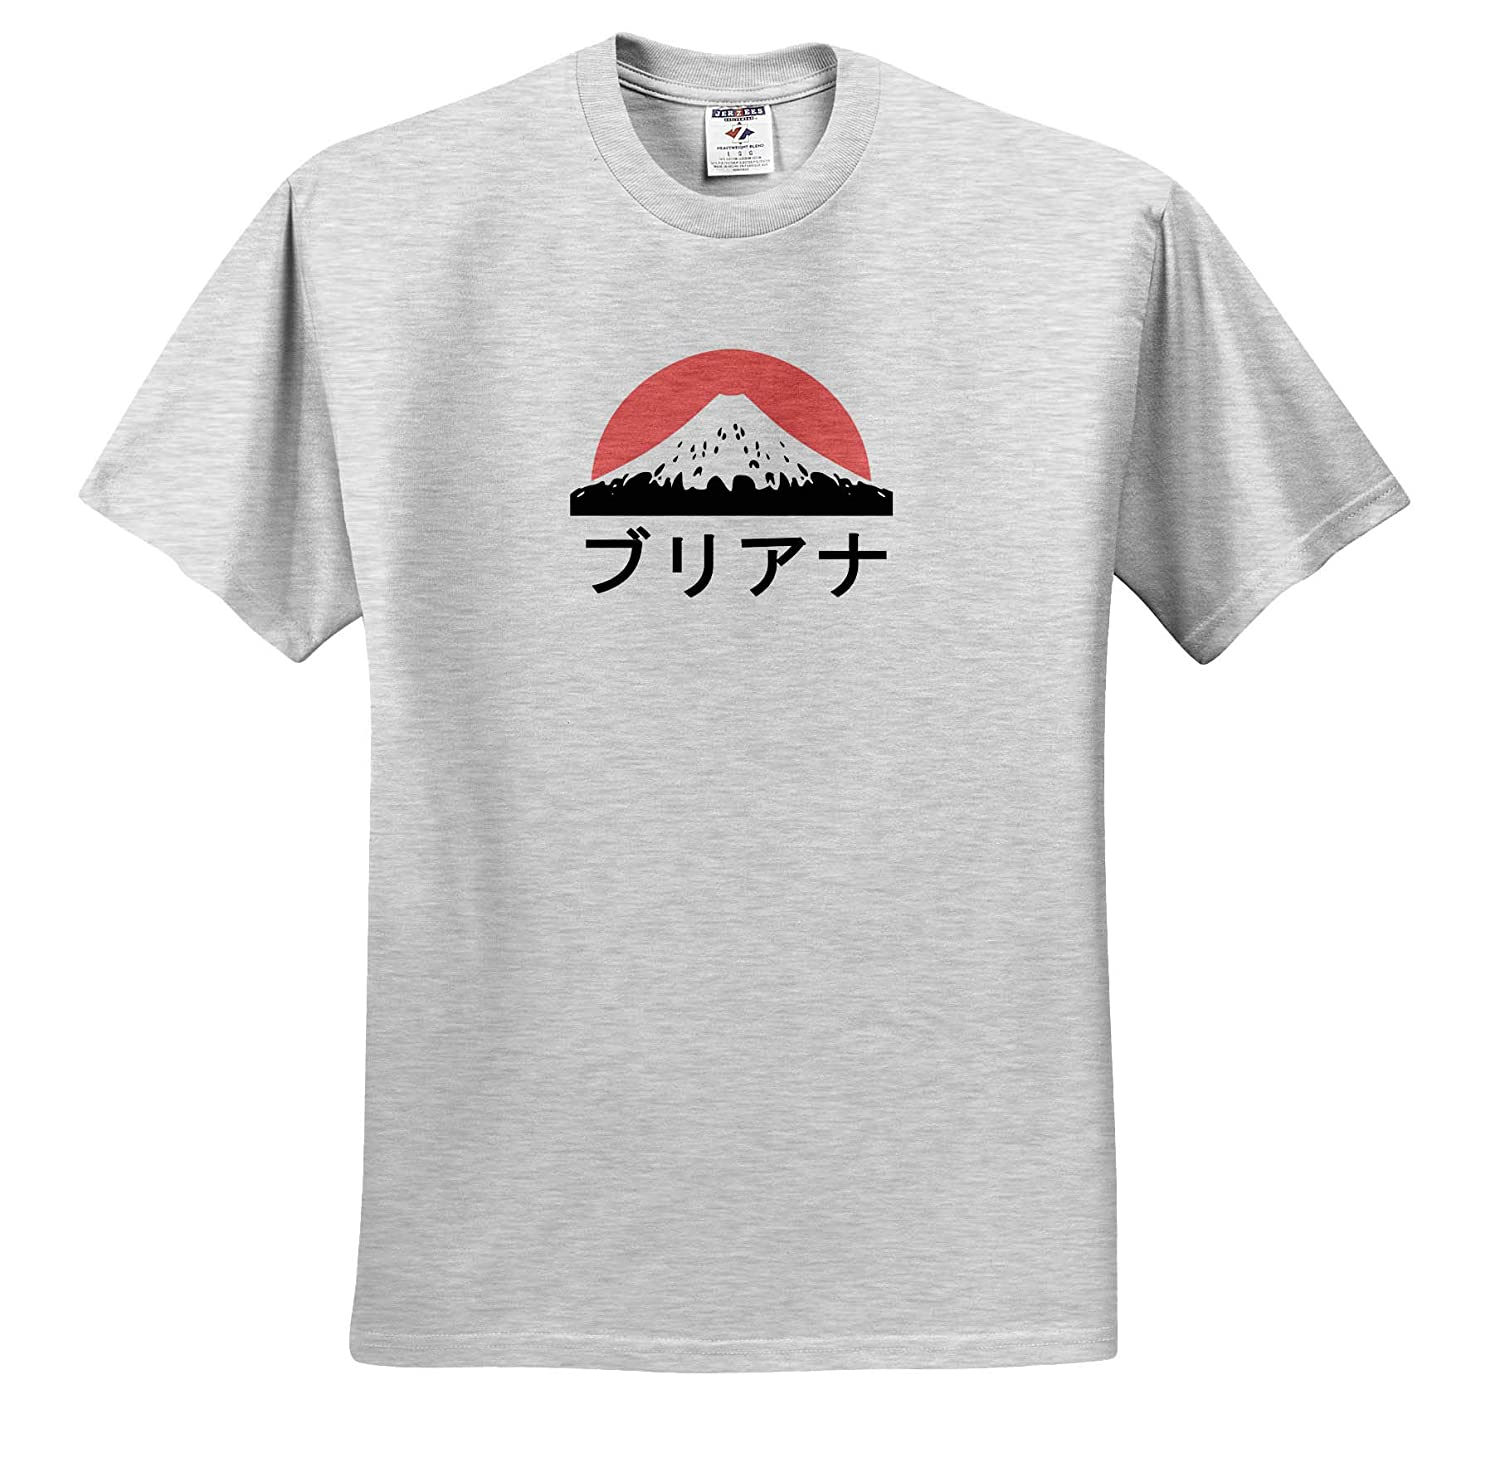 Brianna in Japanese Letters Name in Japanese 3dRose InspirationzStore ts/_320445 Adult T-Shirt XL